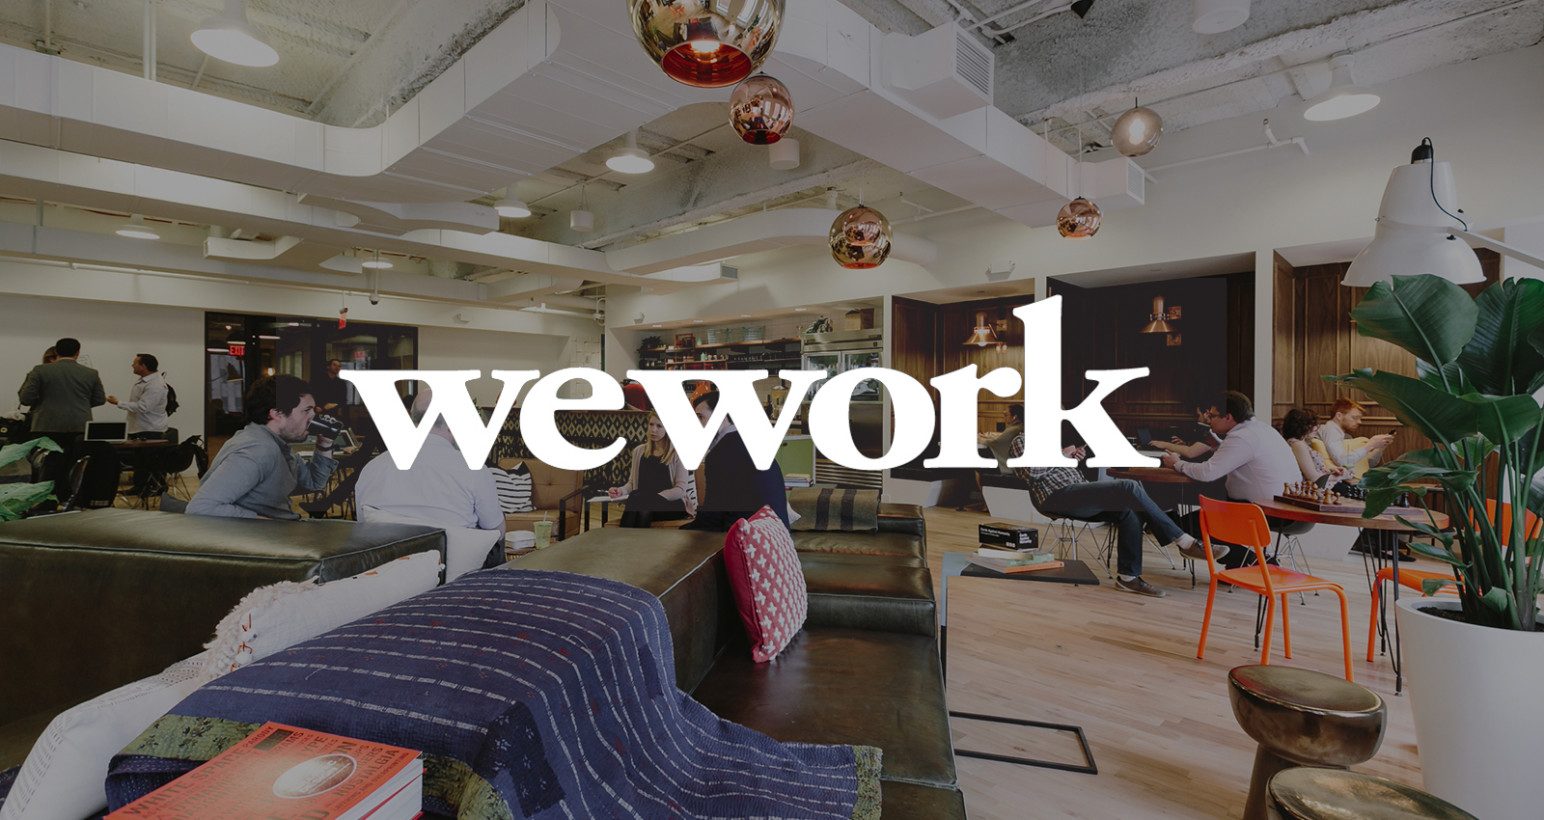 WeWork raises $4.4 *billion* to continue its worldwide expansion